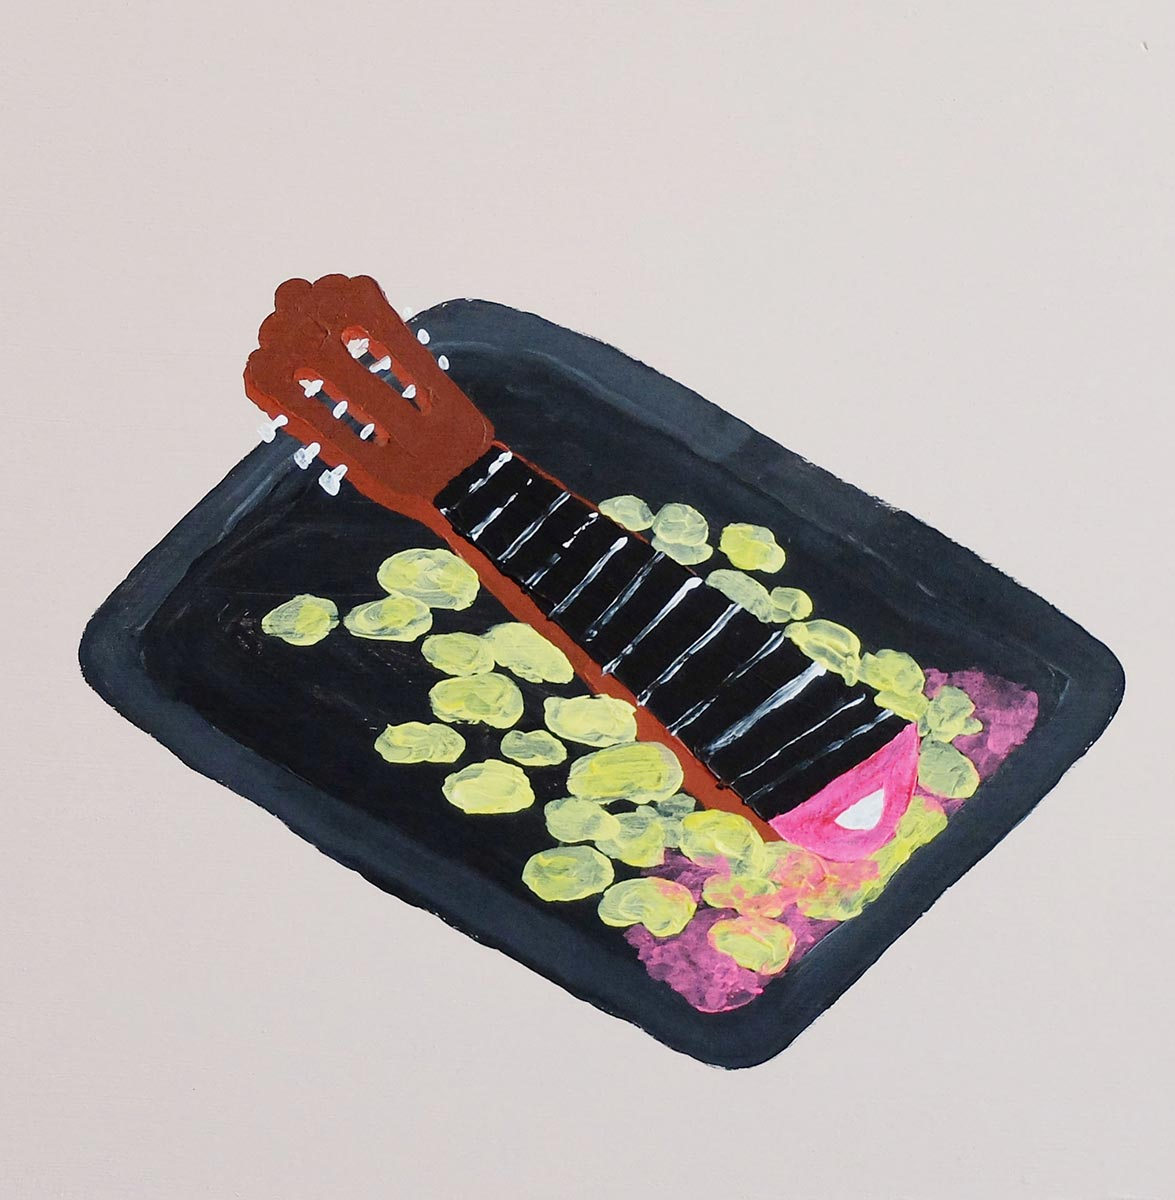 Pata de spanish guitar al horno with patatitas, 30x30 cm, acrylic on plywood, 2016